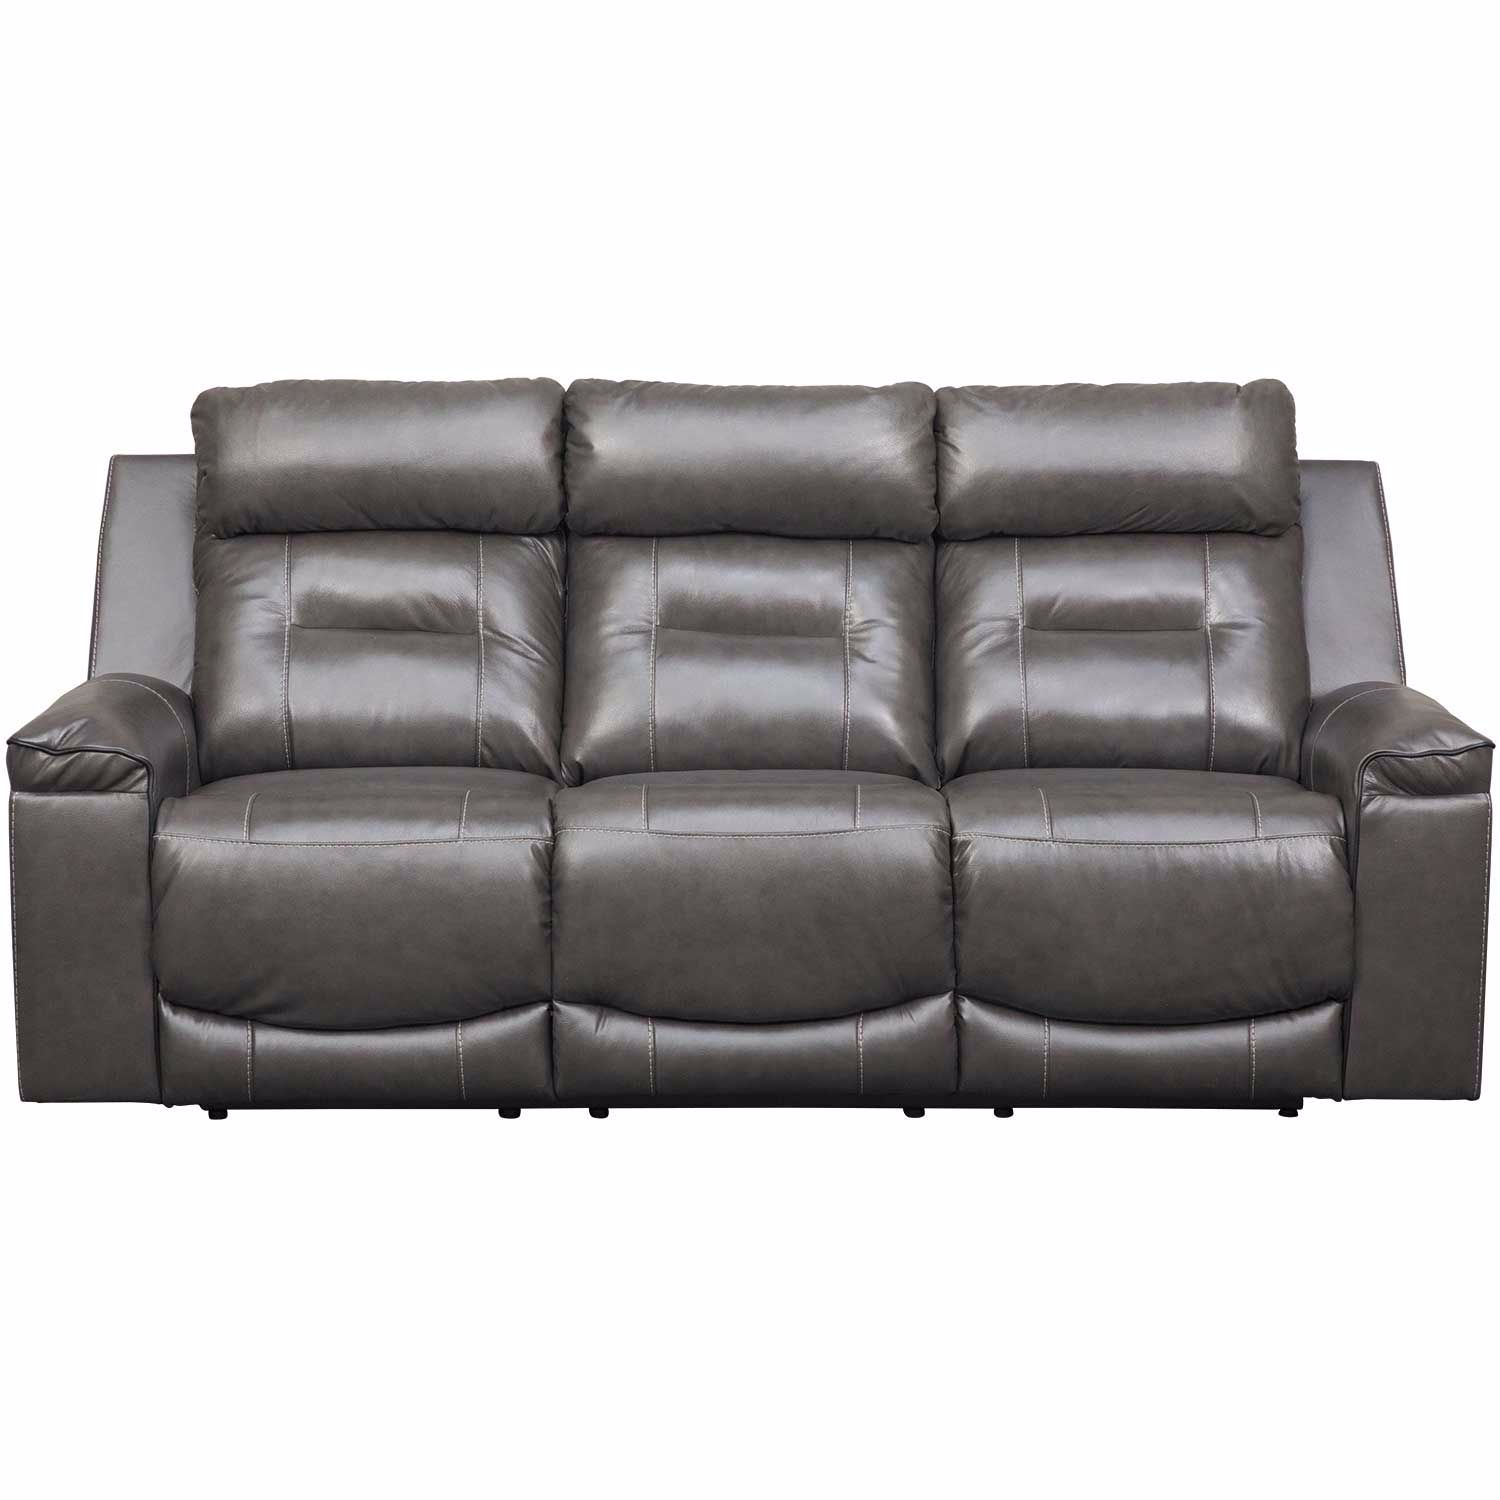 Pomellato Leather Power Reclining Sofa U5010115 Ashley Furniture